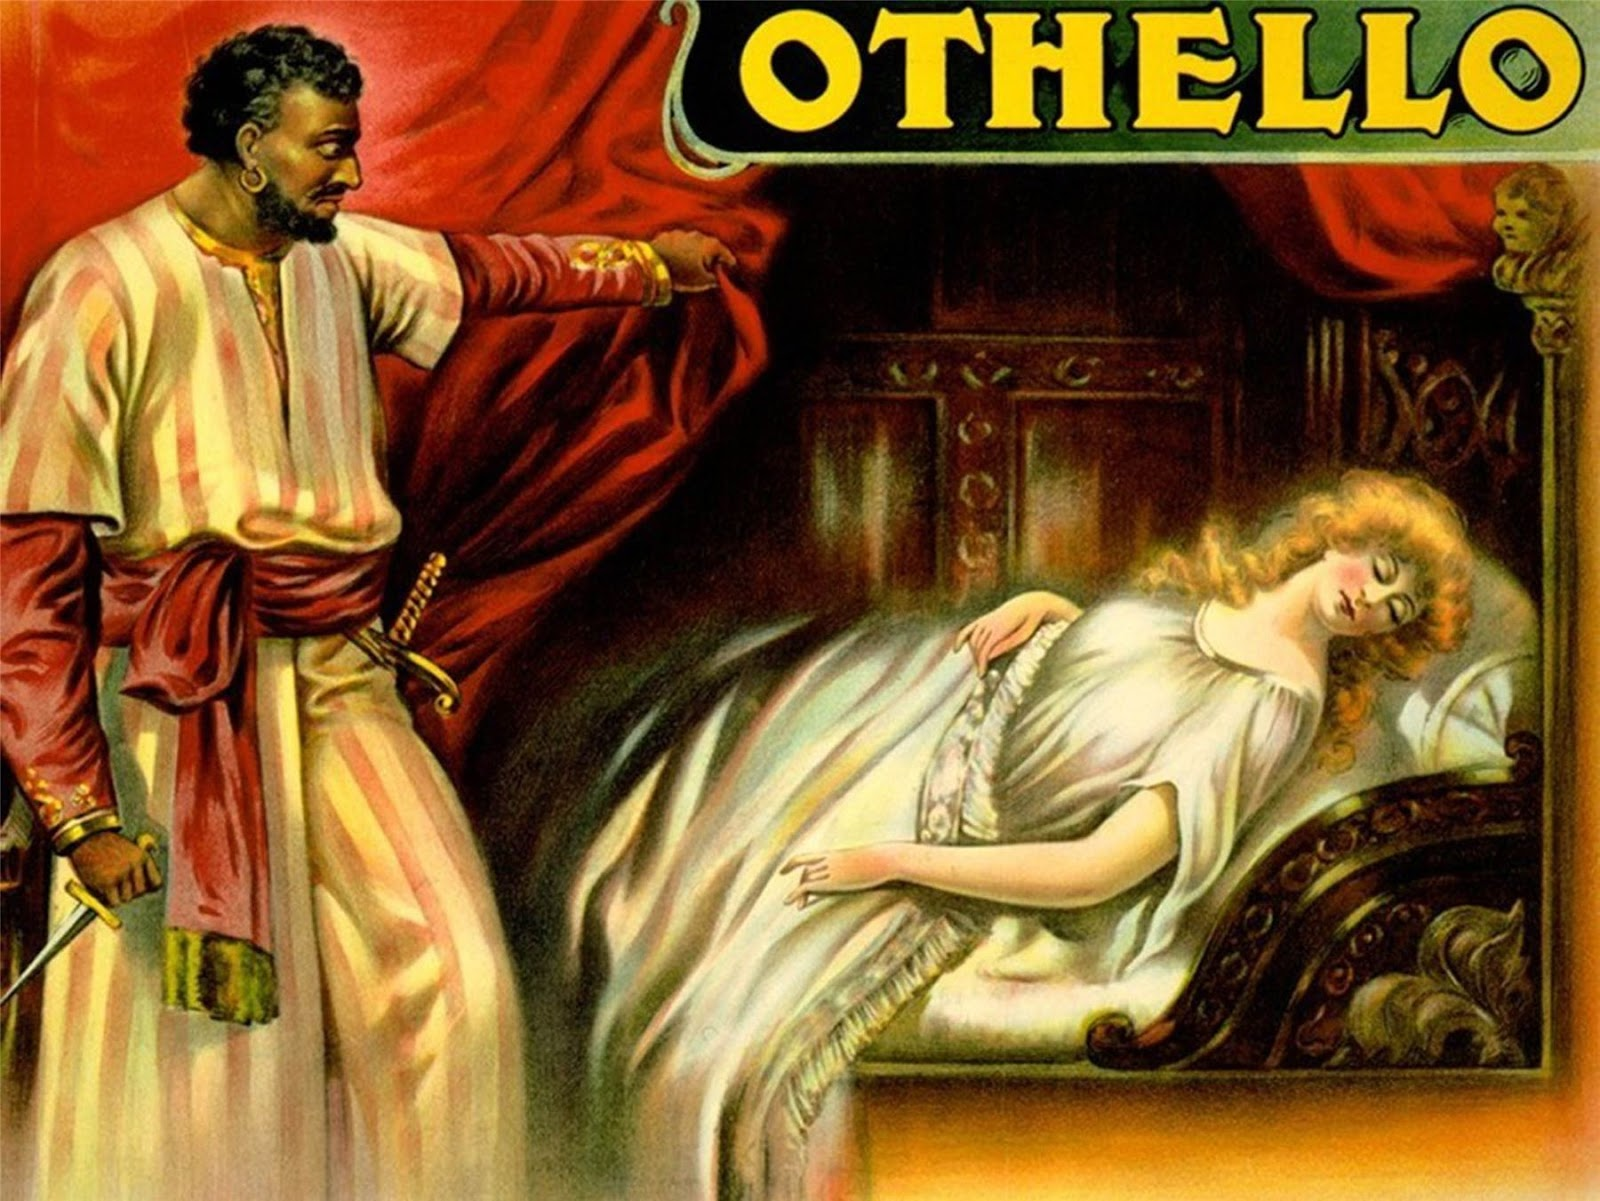 the tragic relationship between othello and desdemona in othello a play by william shakespeare In light of the above statement, othello, is most certainly one of shakespeare's more famous she elopes with othello, a 'moor' who her father despises and states that desdemona ran from, 'her a further clarification that othello and desdemona's relationship were doomed to fail is in the fact that.